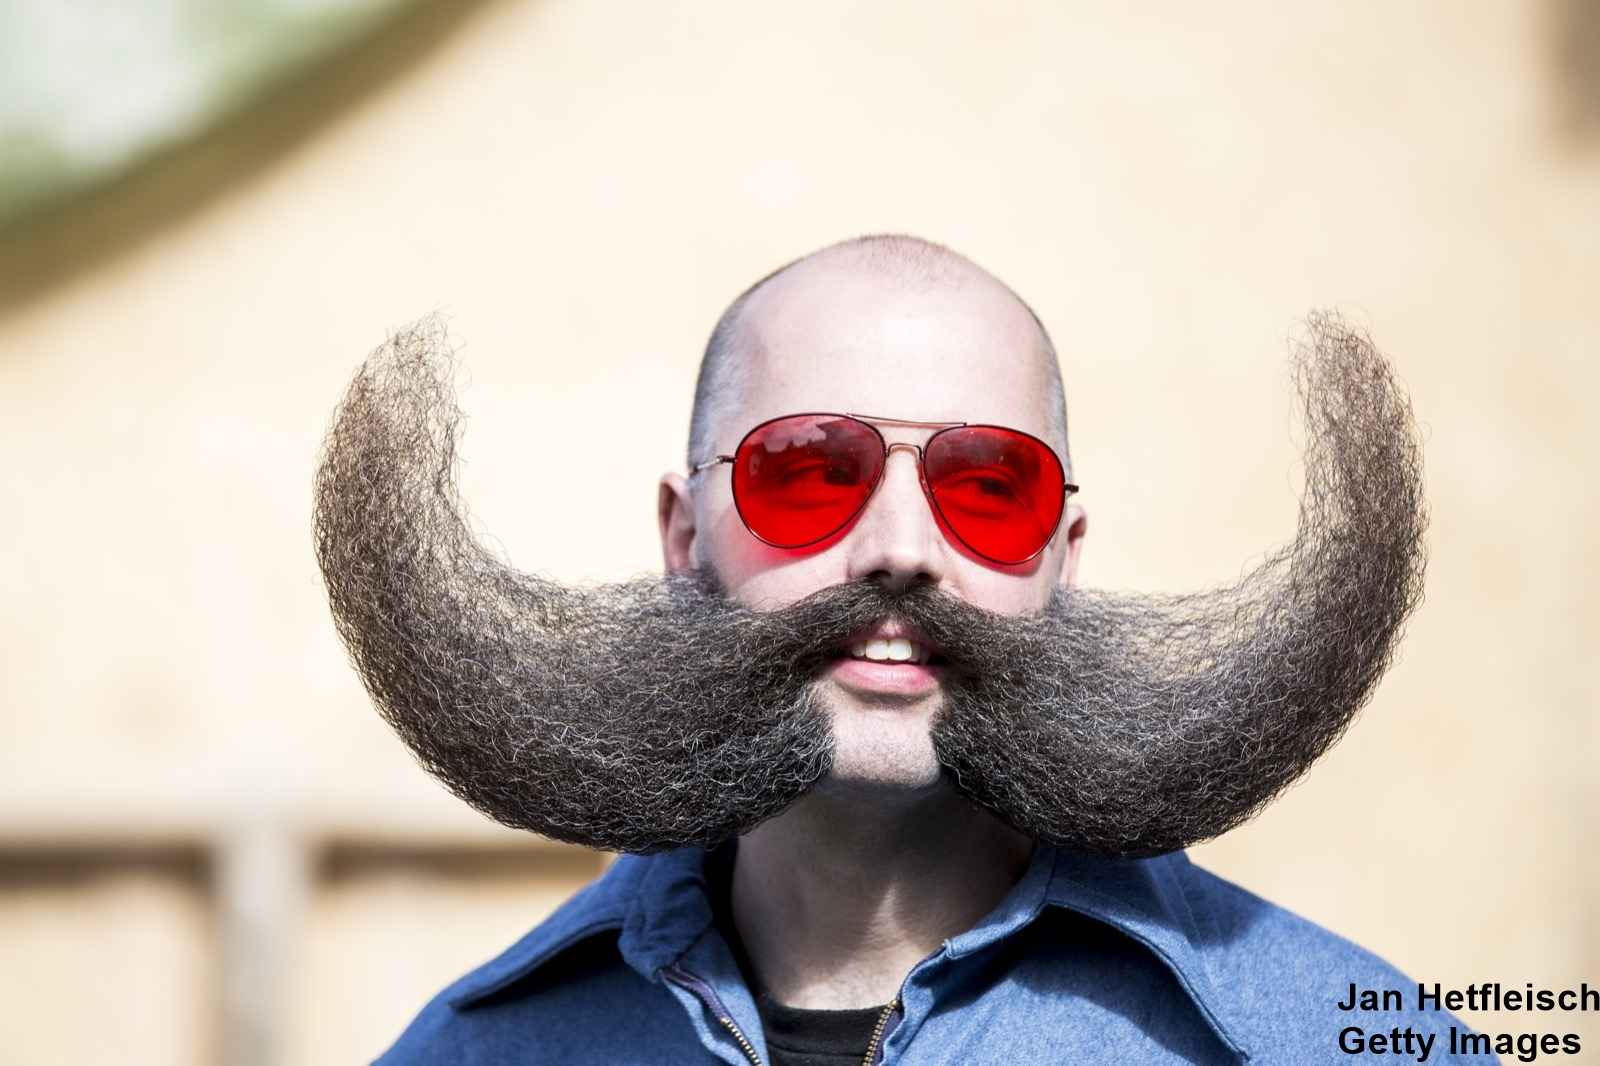 LEOGANG, AUSTRIA - OCTOBER 3: A contestant of the World Beard And Mustache Championships poses for a picture during the opening ceremony of the Championships 2015 on October 3, 2015 in Leogang, Austria. Over 300 contestants in teams from across the globe have come to compete in sixteen different categories in three groups: mustache, partial beard and full beard. The event takes place every few years at different locations worldwide. (Photo by Jan Hetfleisch/Getty Images)